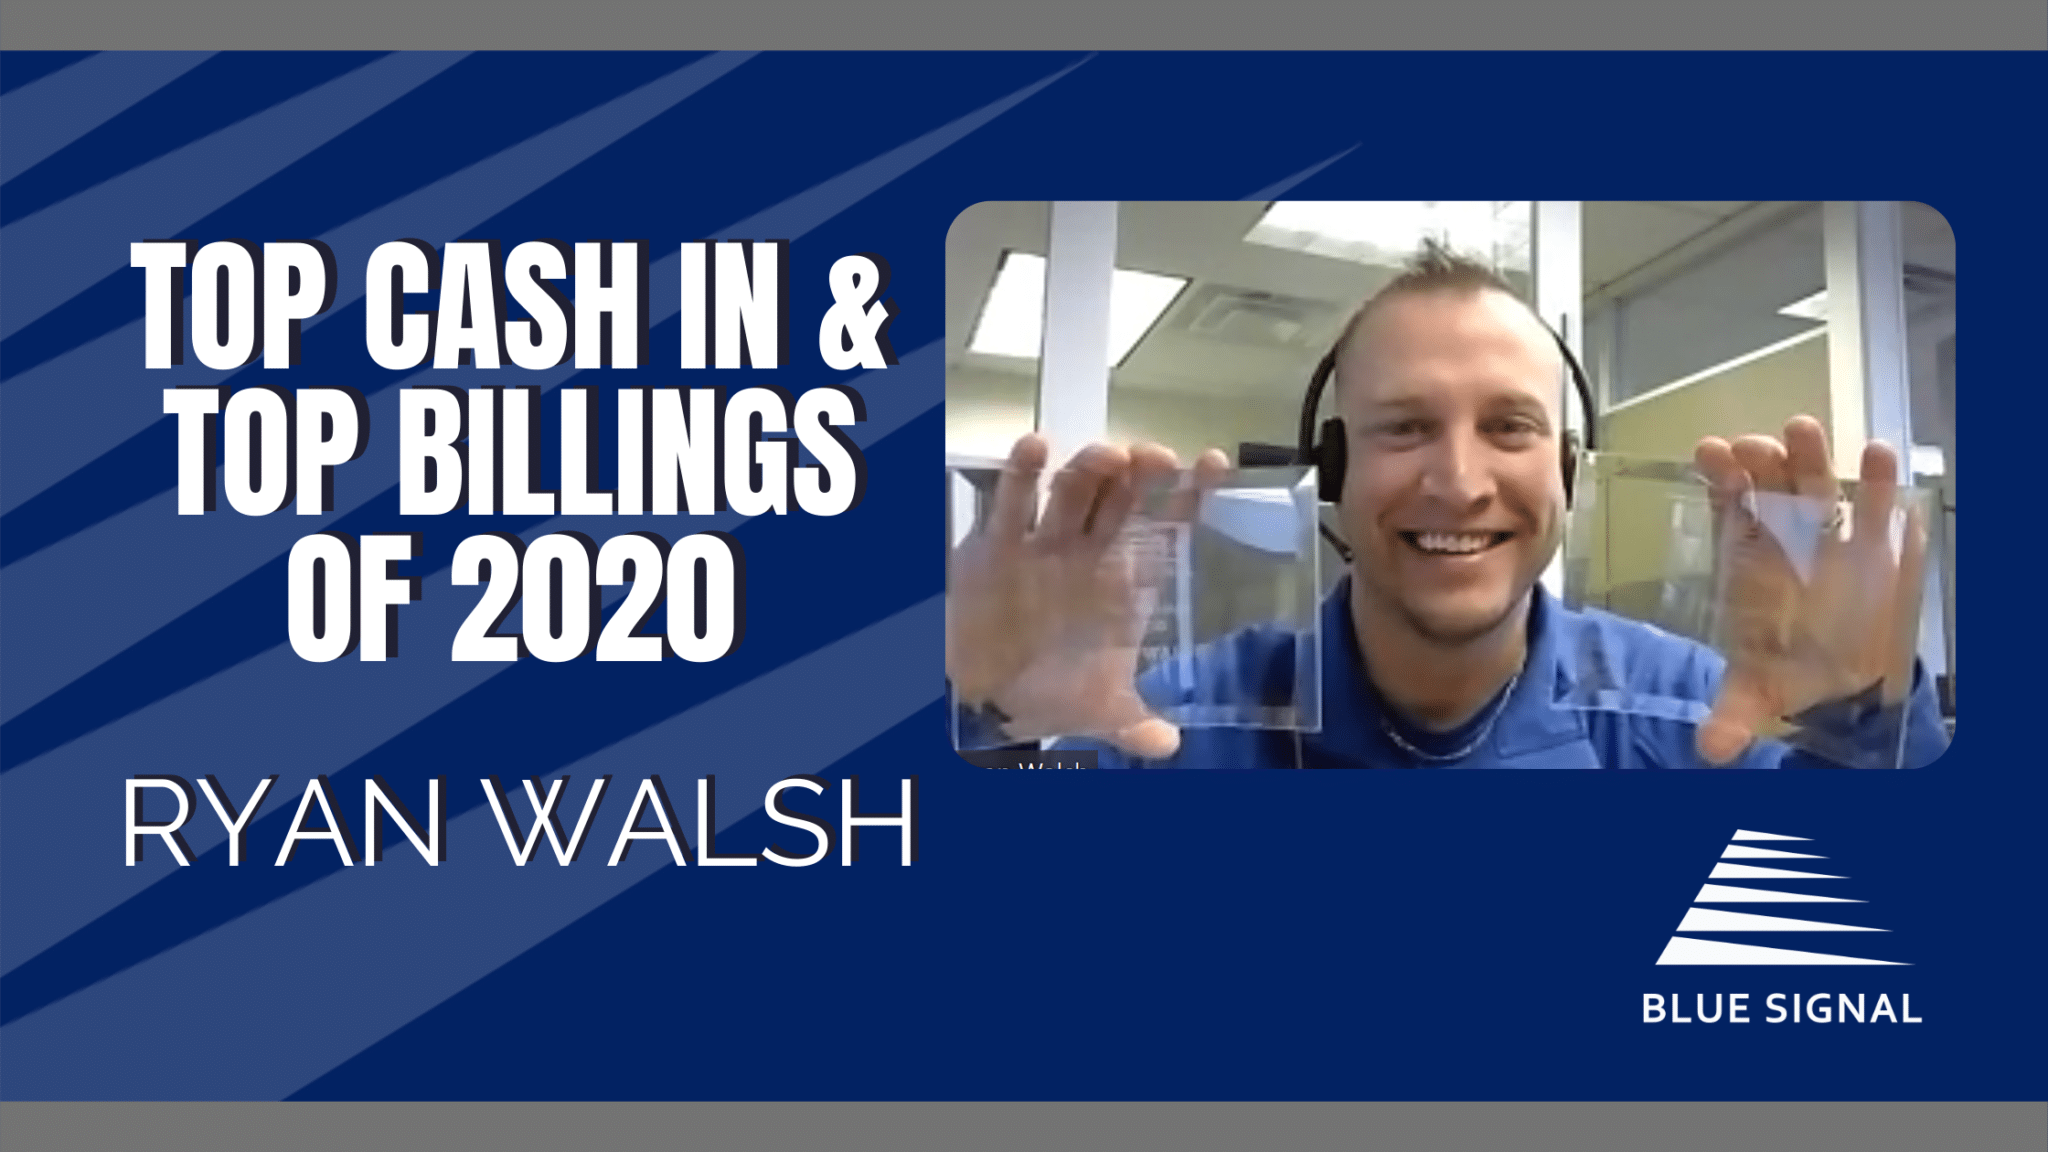 Top Cash In & Top Billings 2020 - Ryan Walsh